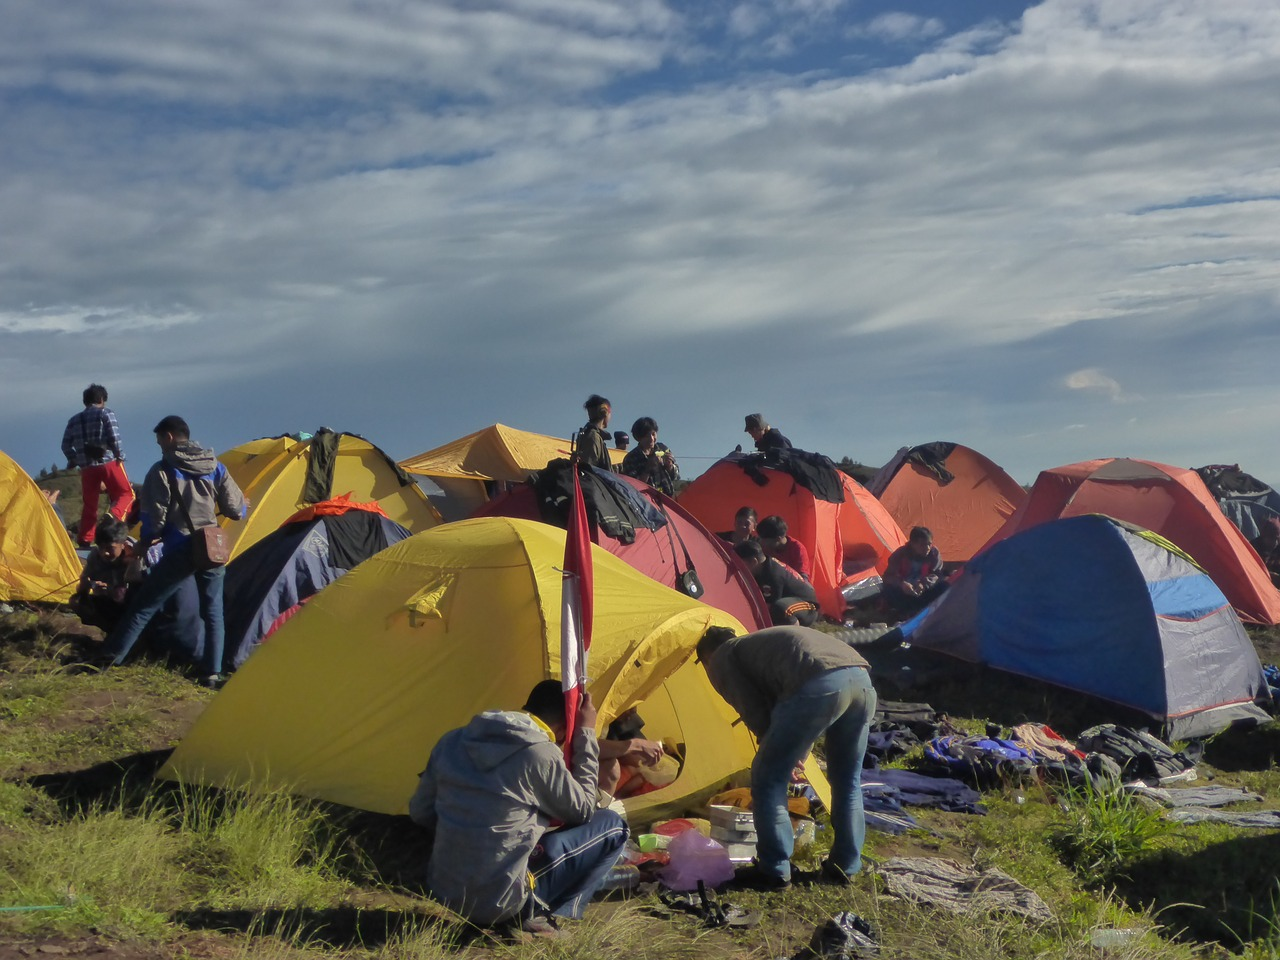 People setting up their camping gear